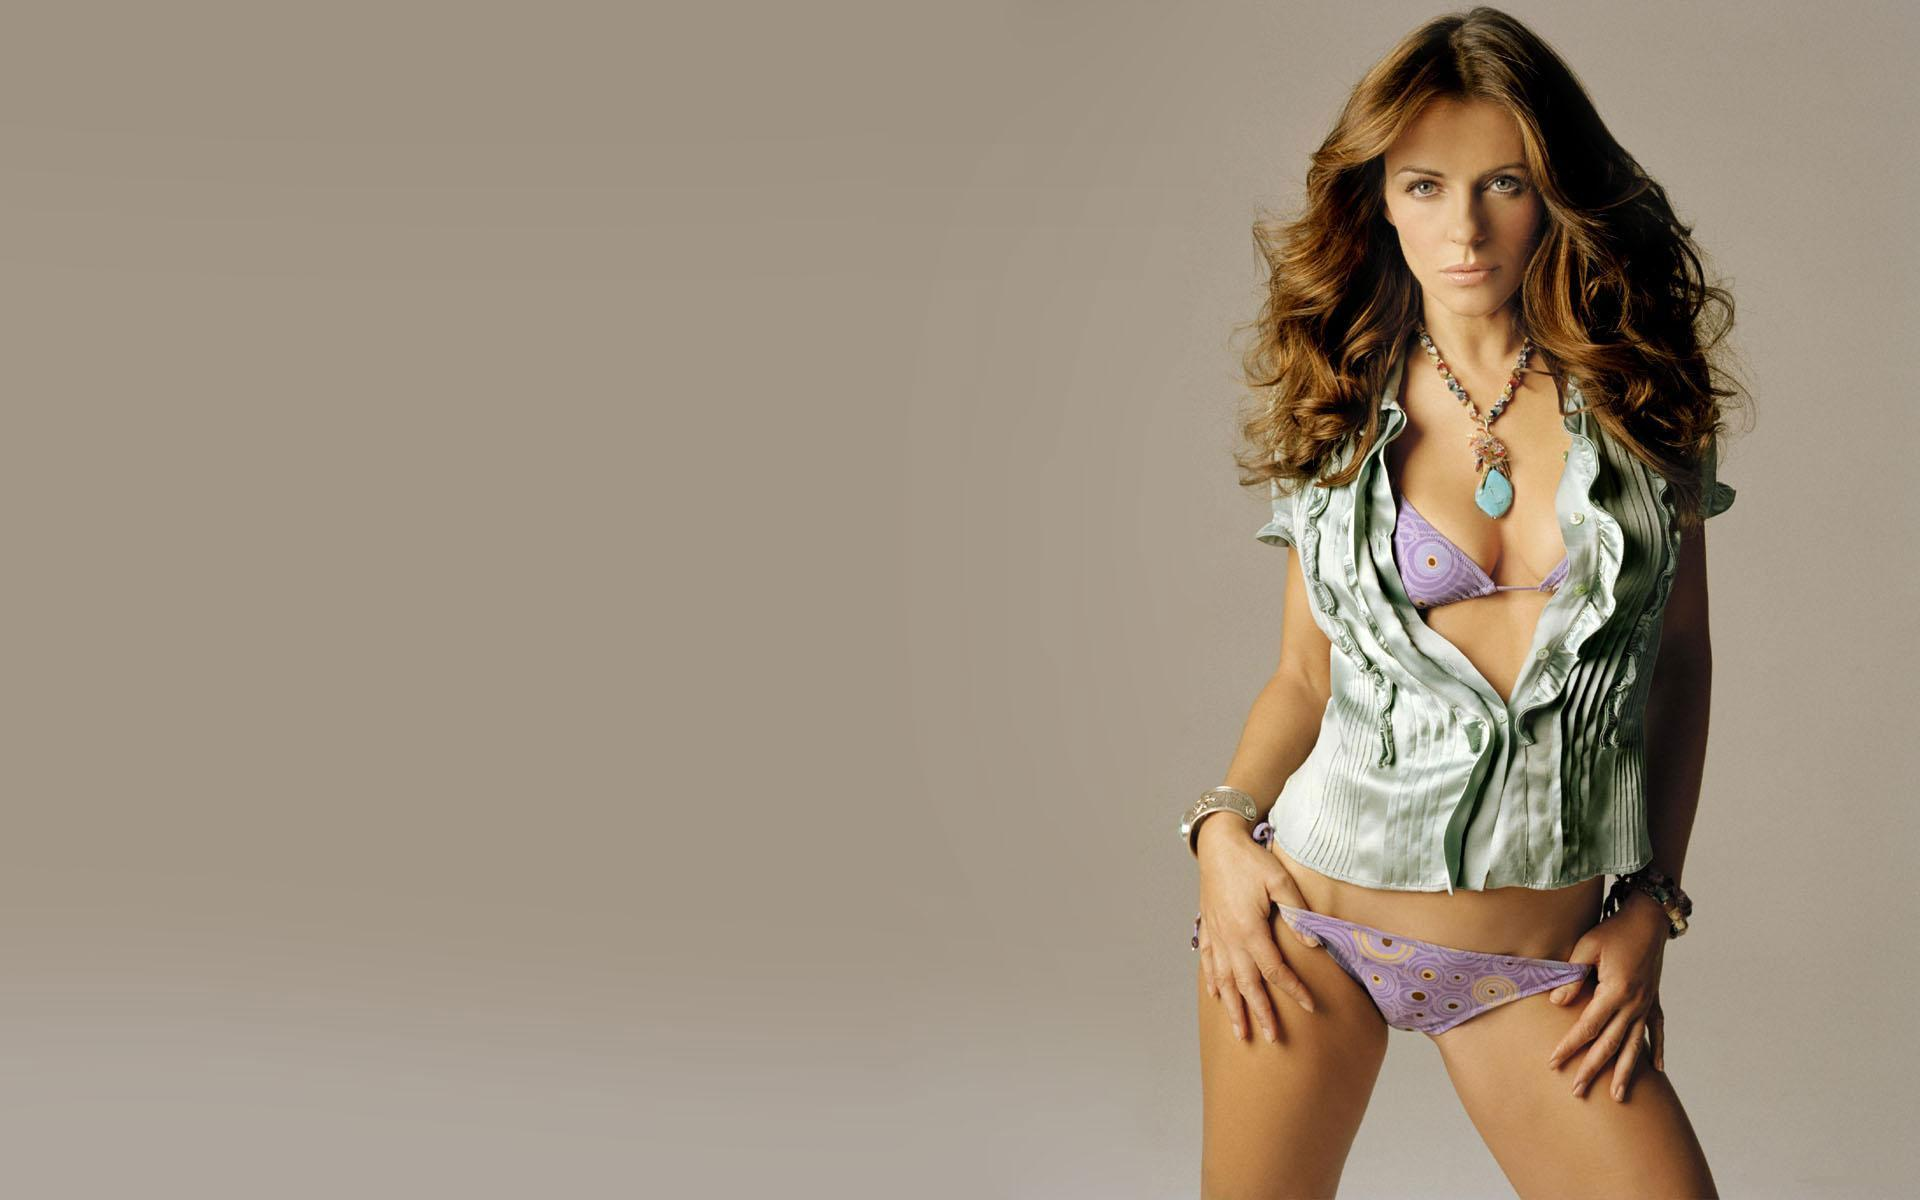 elizabeth-hurley-spicy-photos